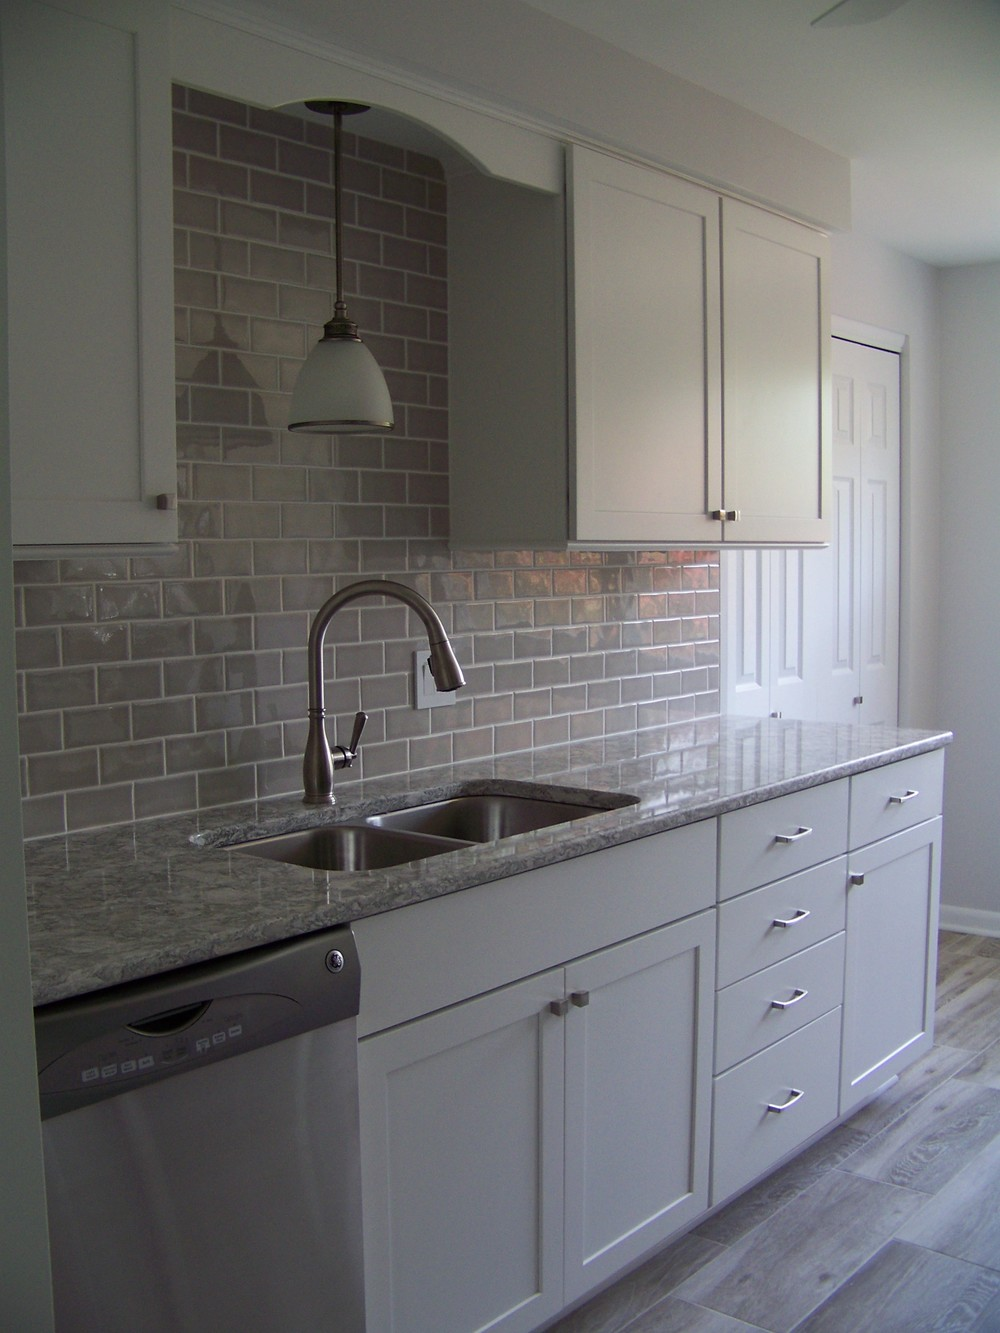 Diamond Vibe Cabinets, Cambria Quartz Tops, subway-style backsplash.